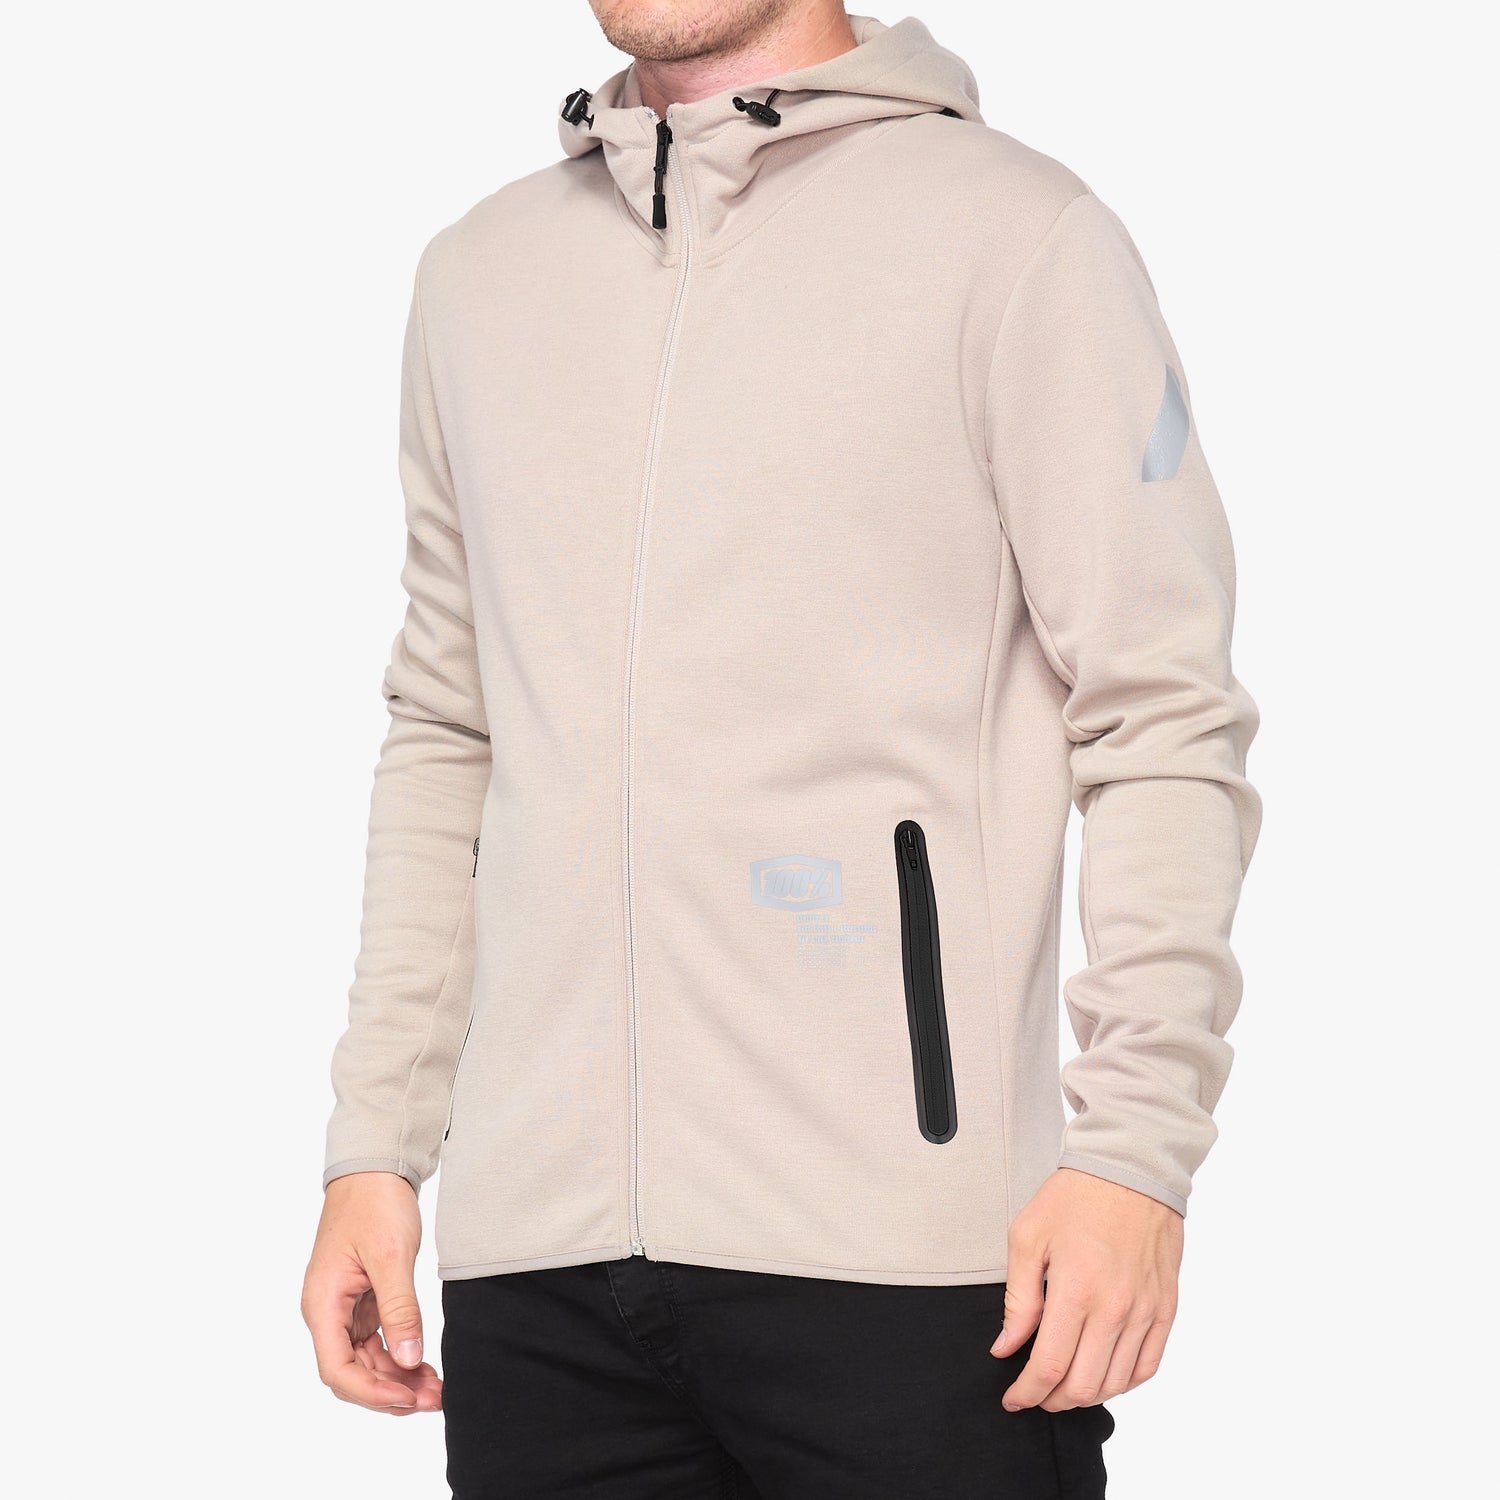 VICEROY Hooded Zip Tech Fleece Warm Grey